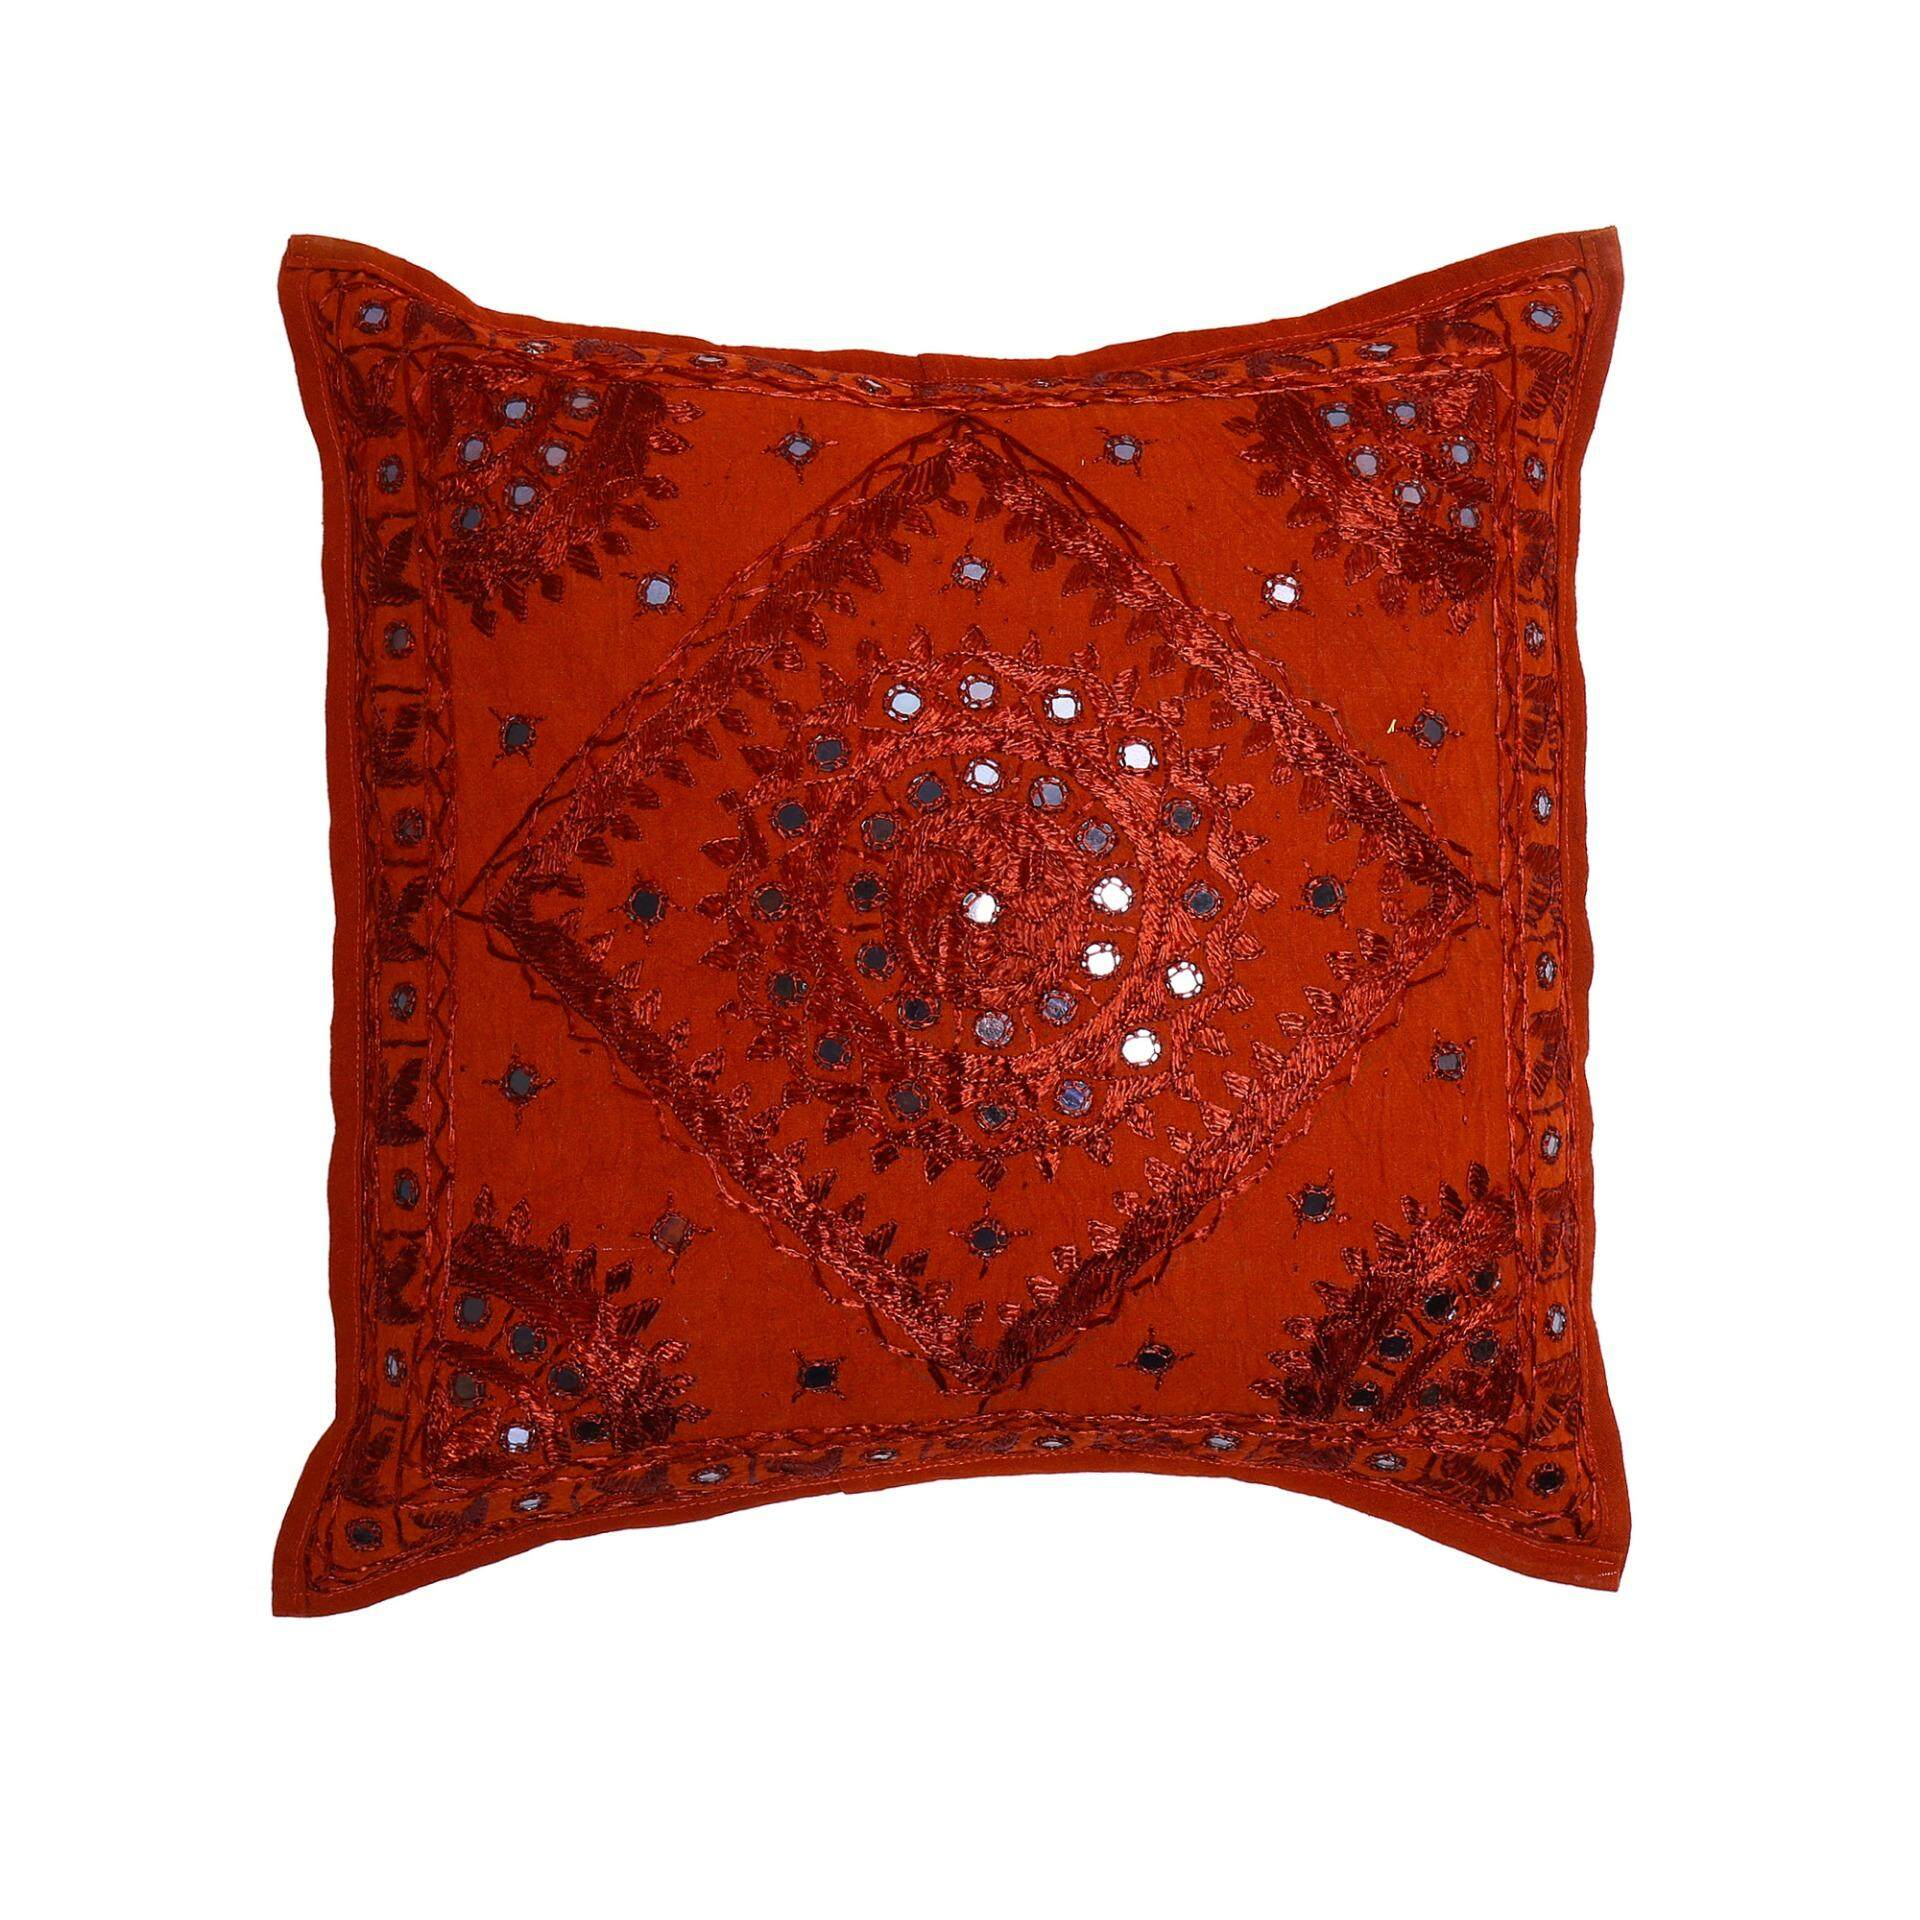 Jaipurse Indian Cushion Cover Cotton Mirror Work Hand Embroidered Square